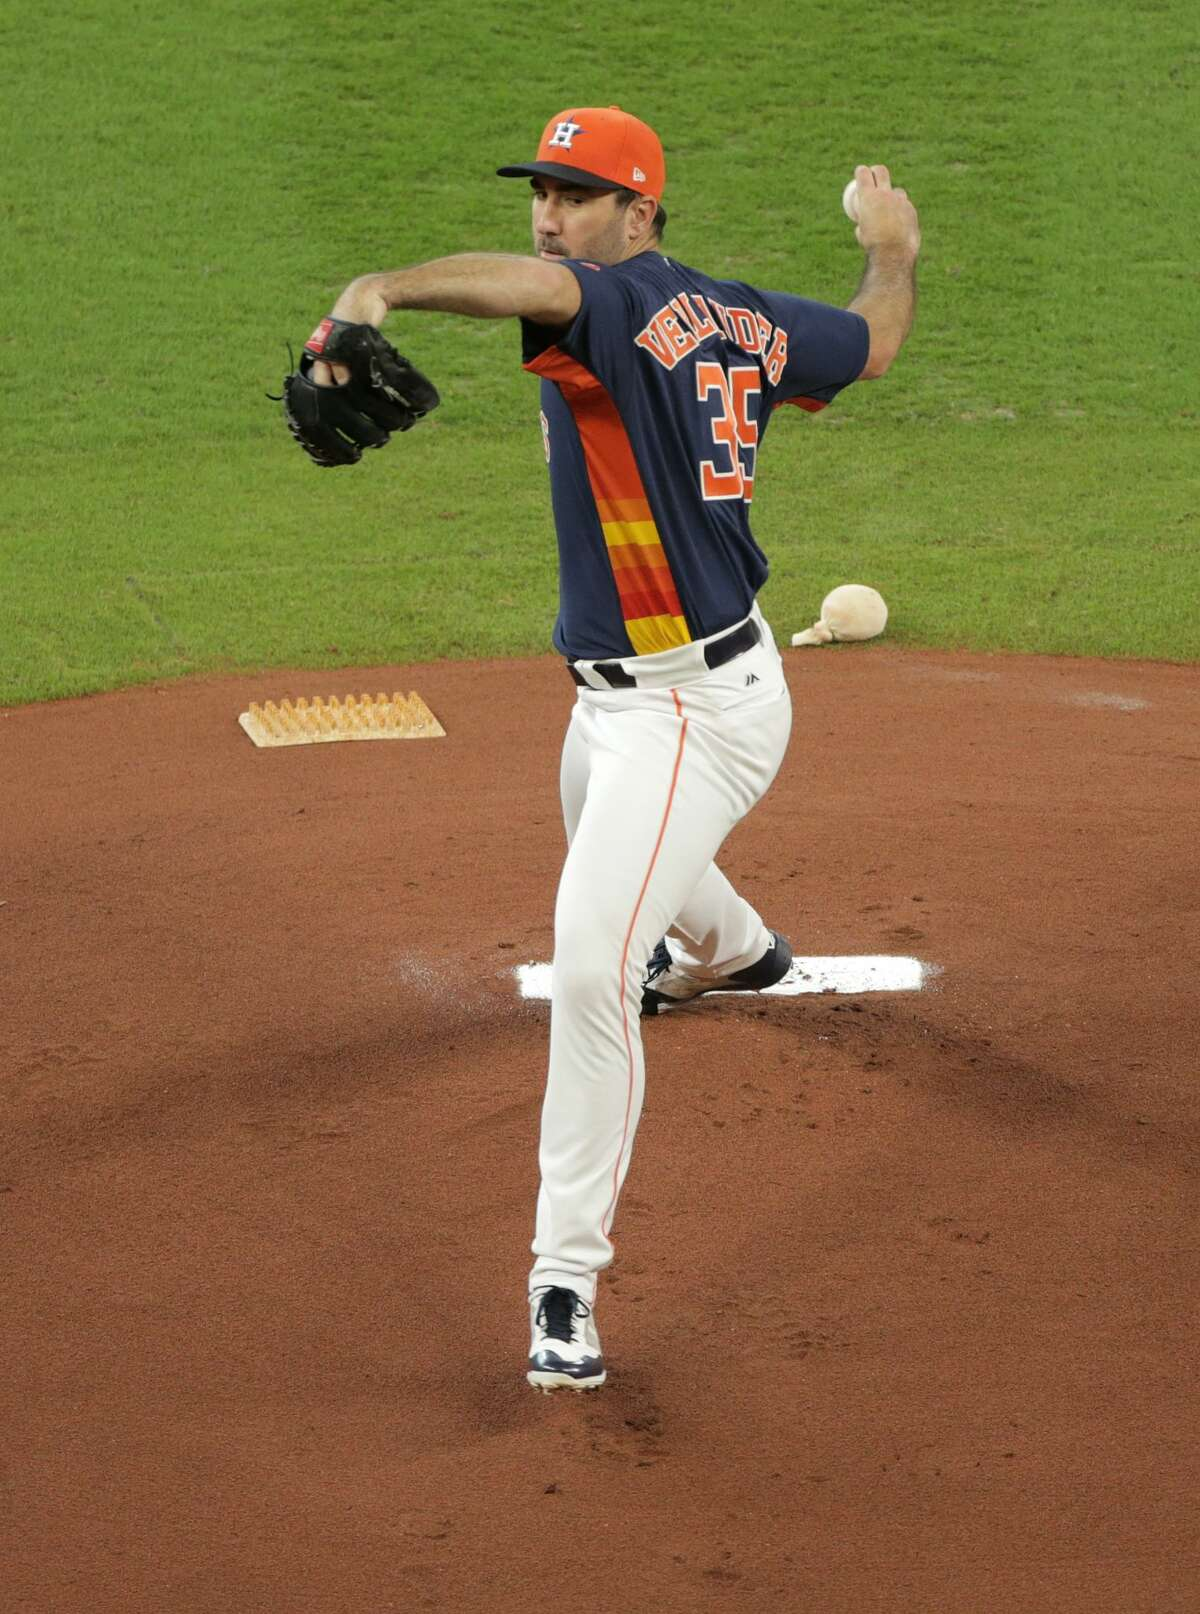 Houston Astros starting pitcher Justin Verlander (35) throws out a pitch at home as an Astro against Seattle Mariners at Minute Maid Park on Sunday, Sept. 17, 2017, in Houston. ( Elizabeth Conley / Houston Chronicle )